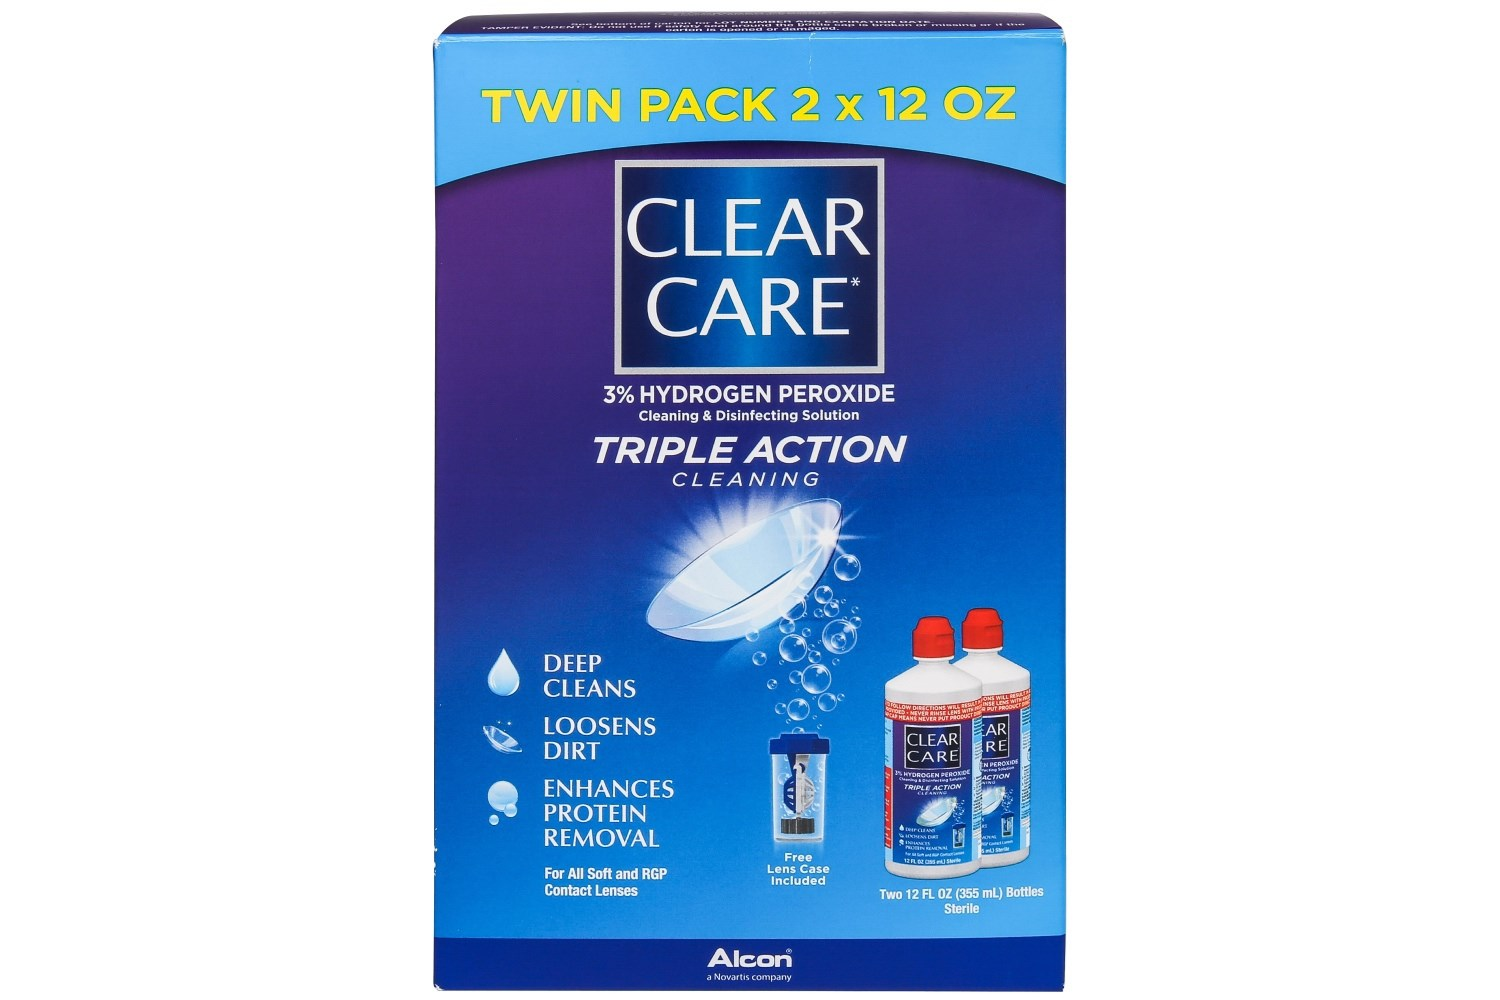 Clear Care Contact Lenses Cleaning and Disinfecting Solution Twin Pack